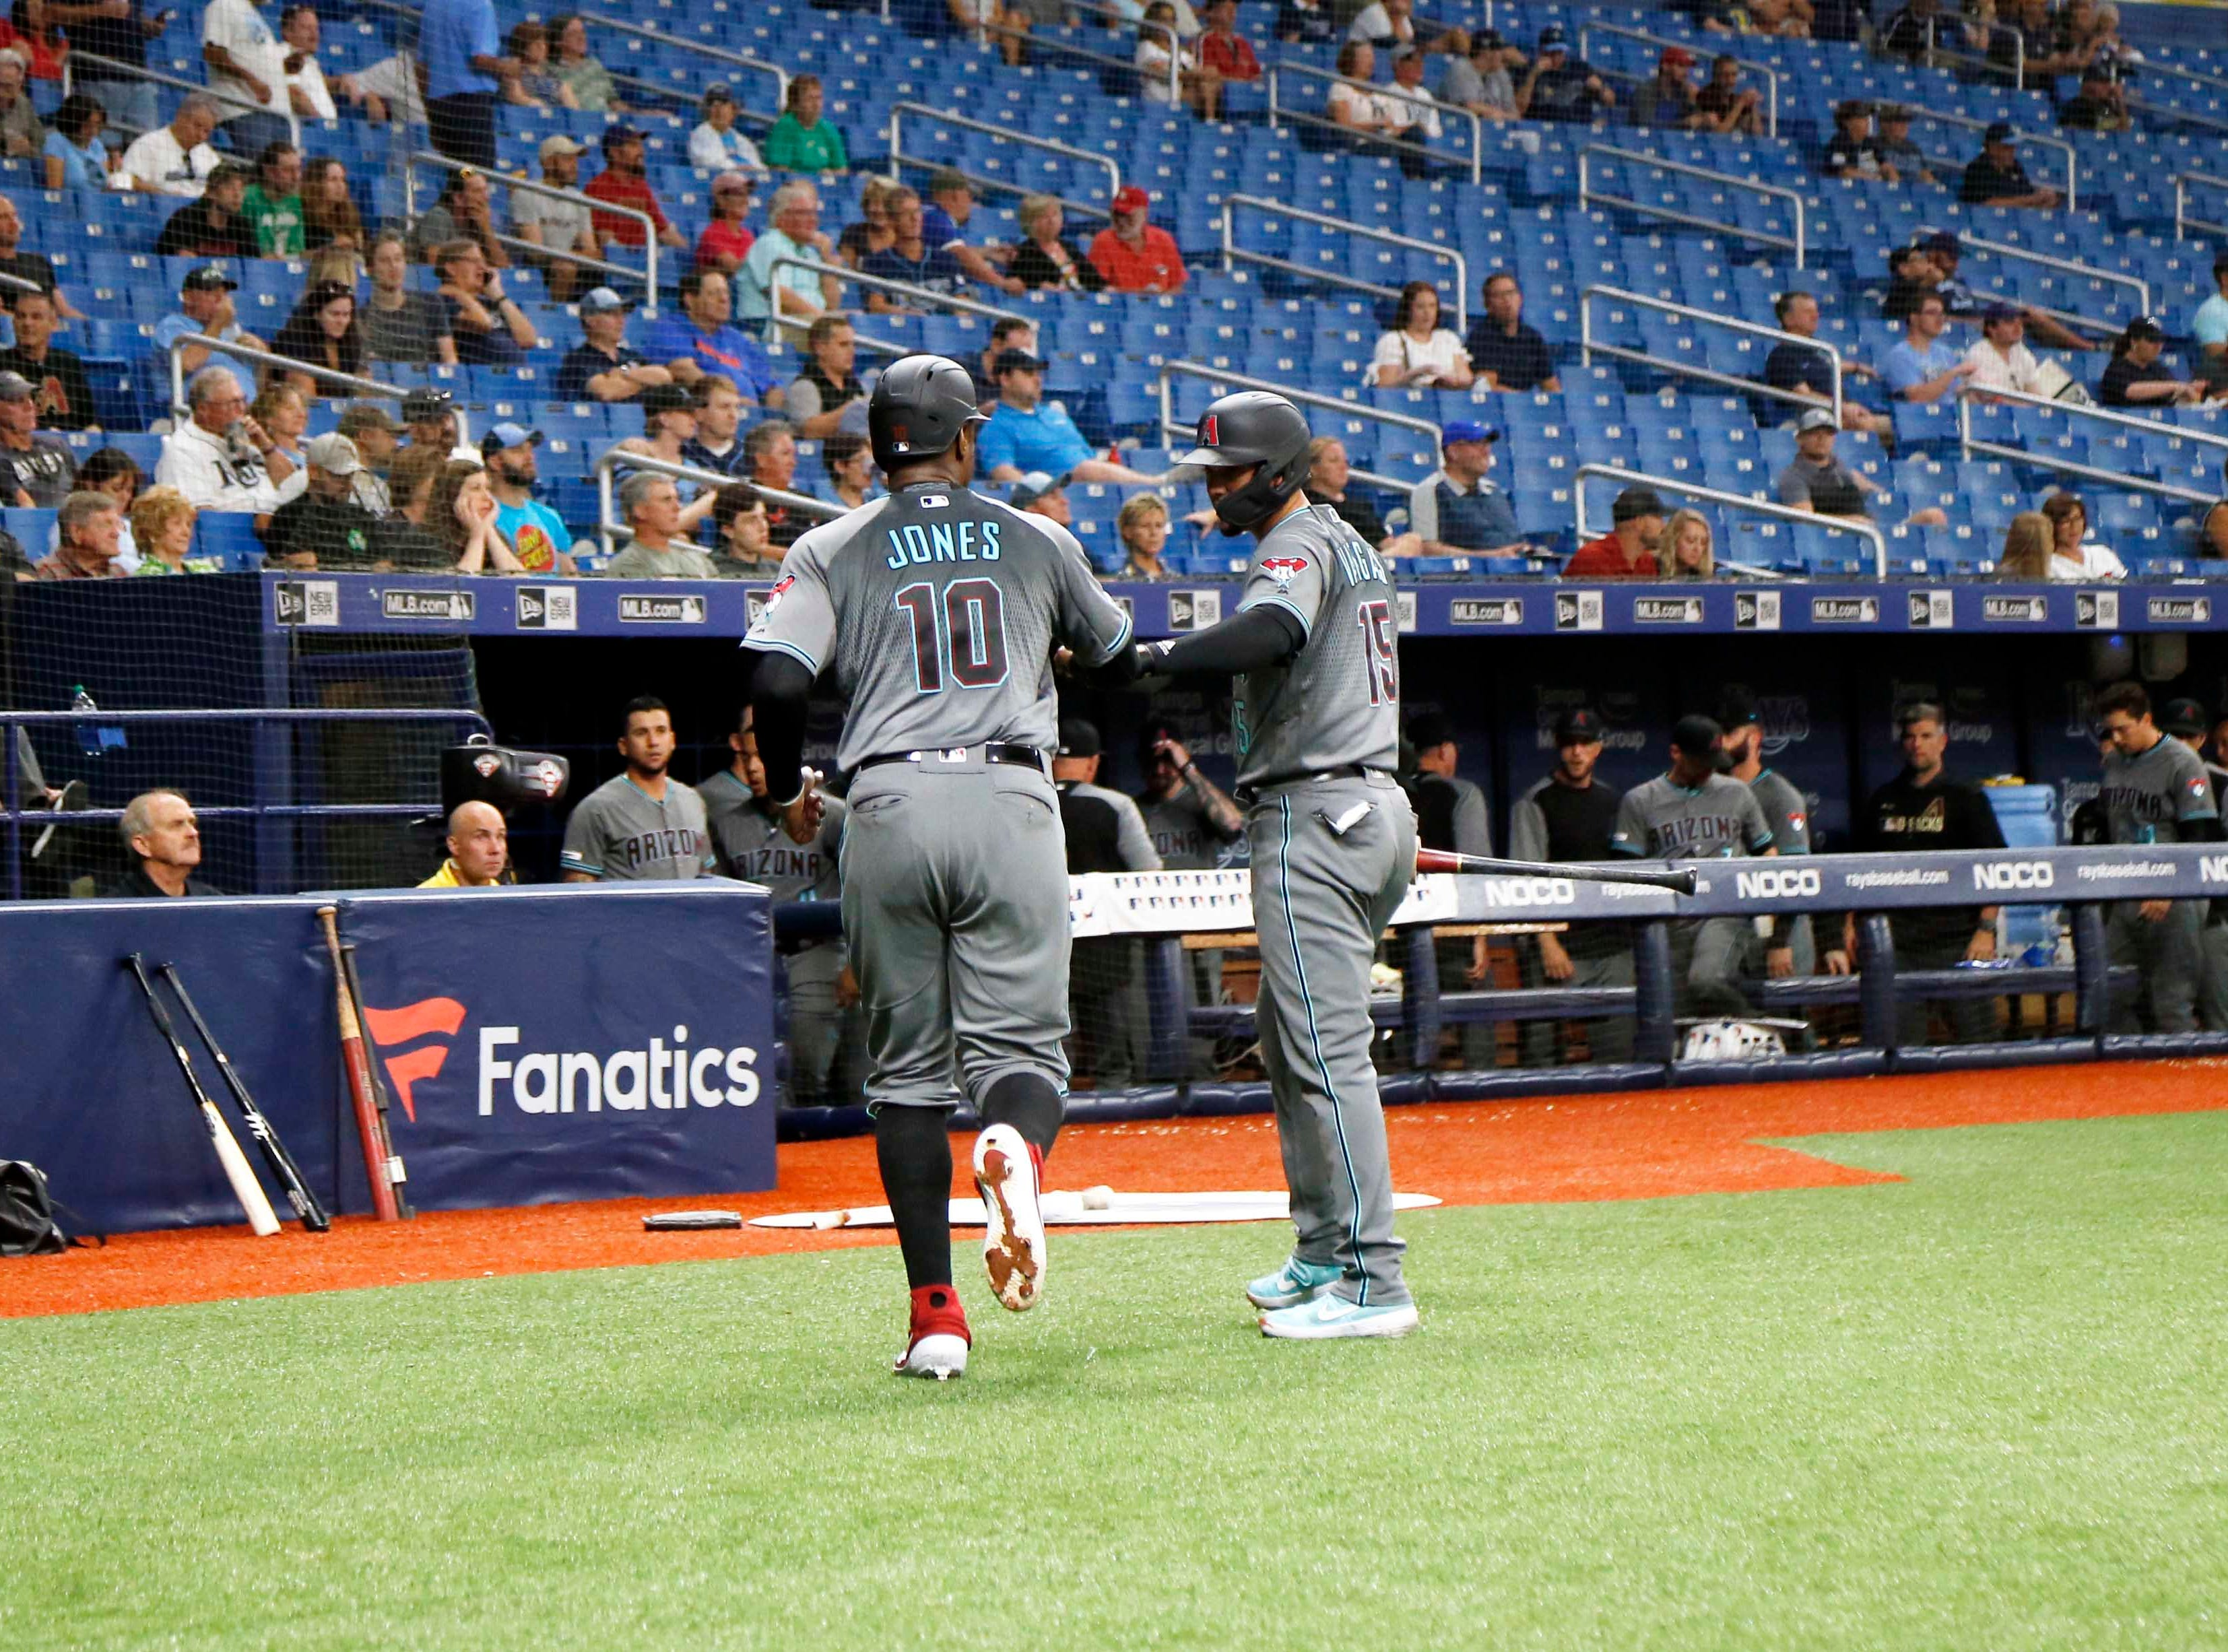 May 7, 2019; St. Petersburg, FL, USA; Arizona Diamondbacks right fielder Adam Jones (10) is congratulated by second baseman Ildemaro Vargas (15) as he scores during the fourth inning against the Tampa Bay Rays at Tropicana Field. Mandatory Credit: Kim Klement-USA TODAY Sports